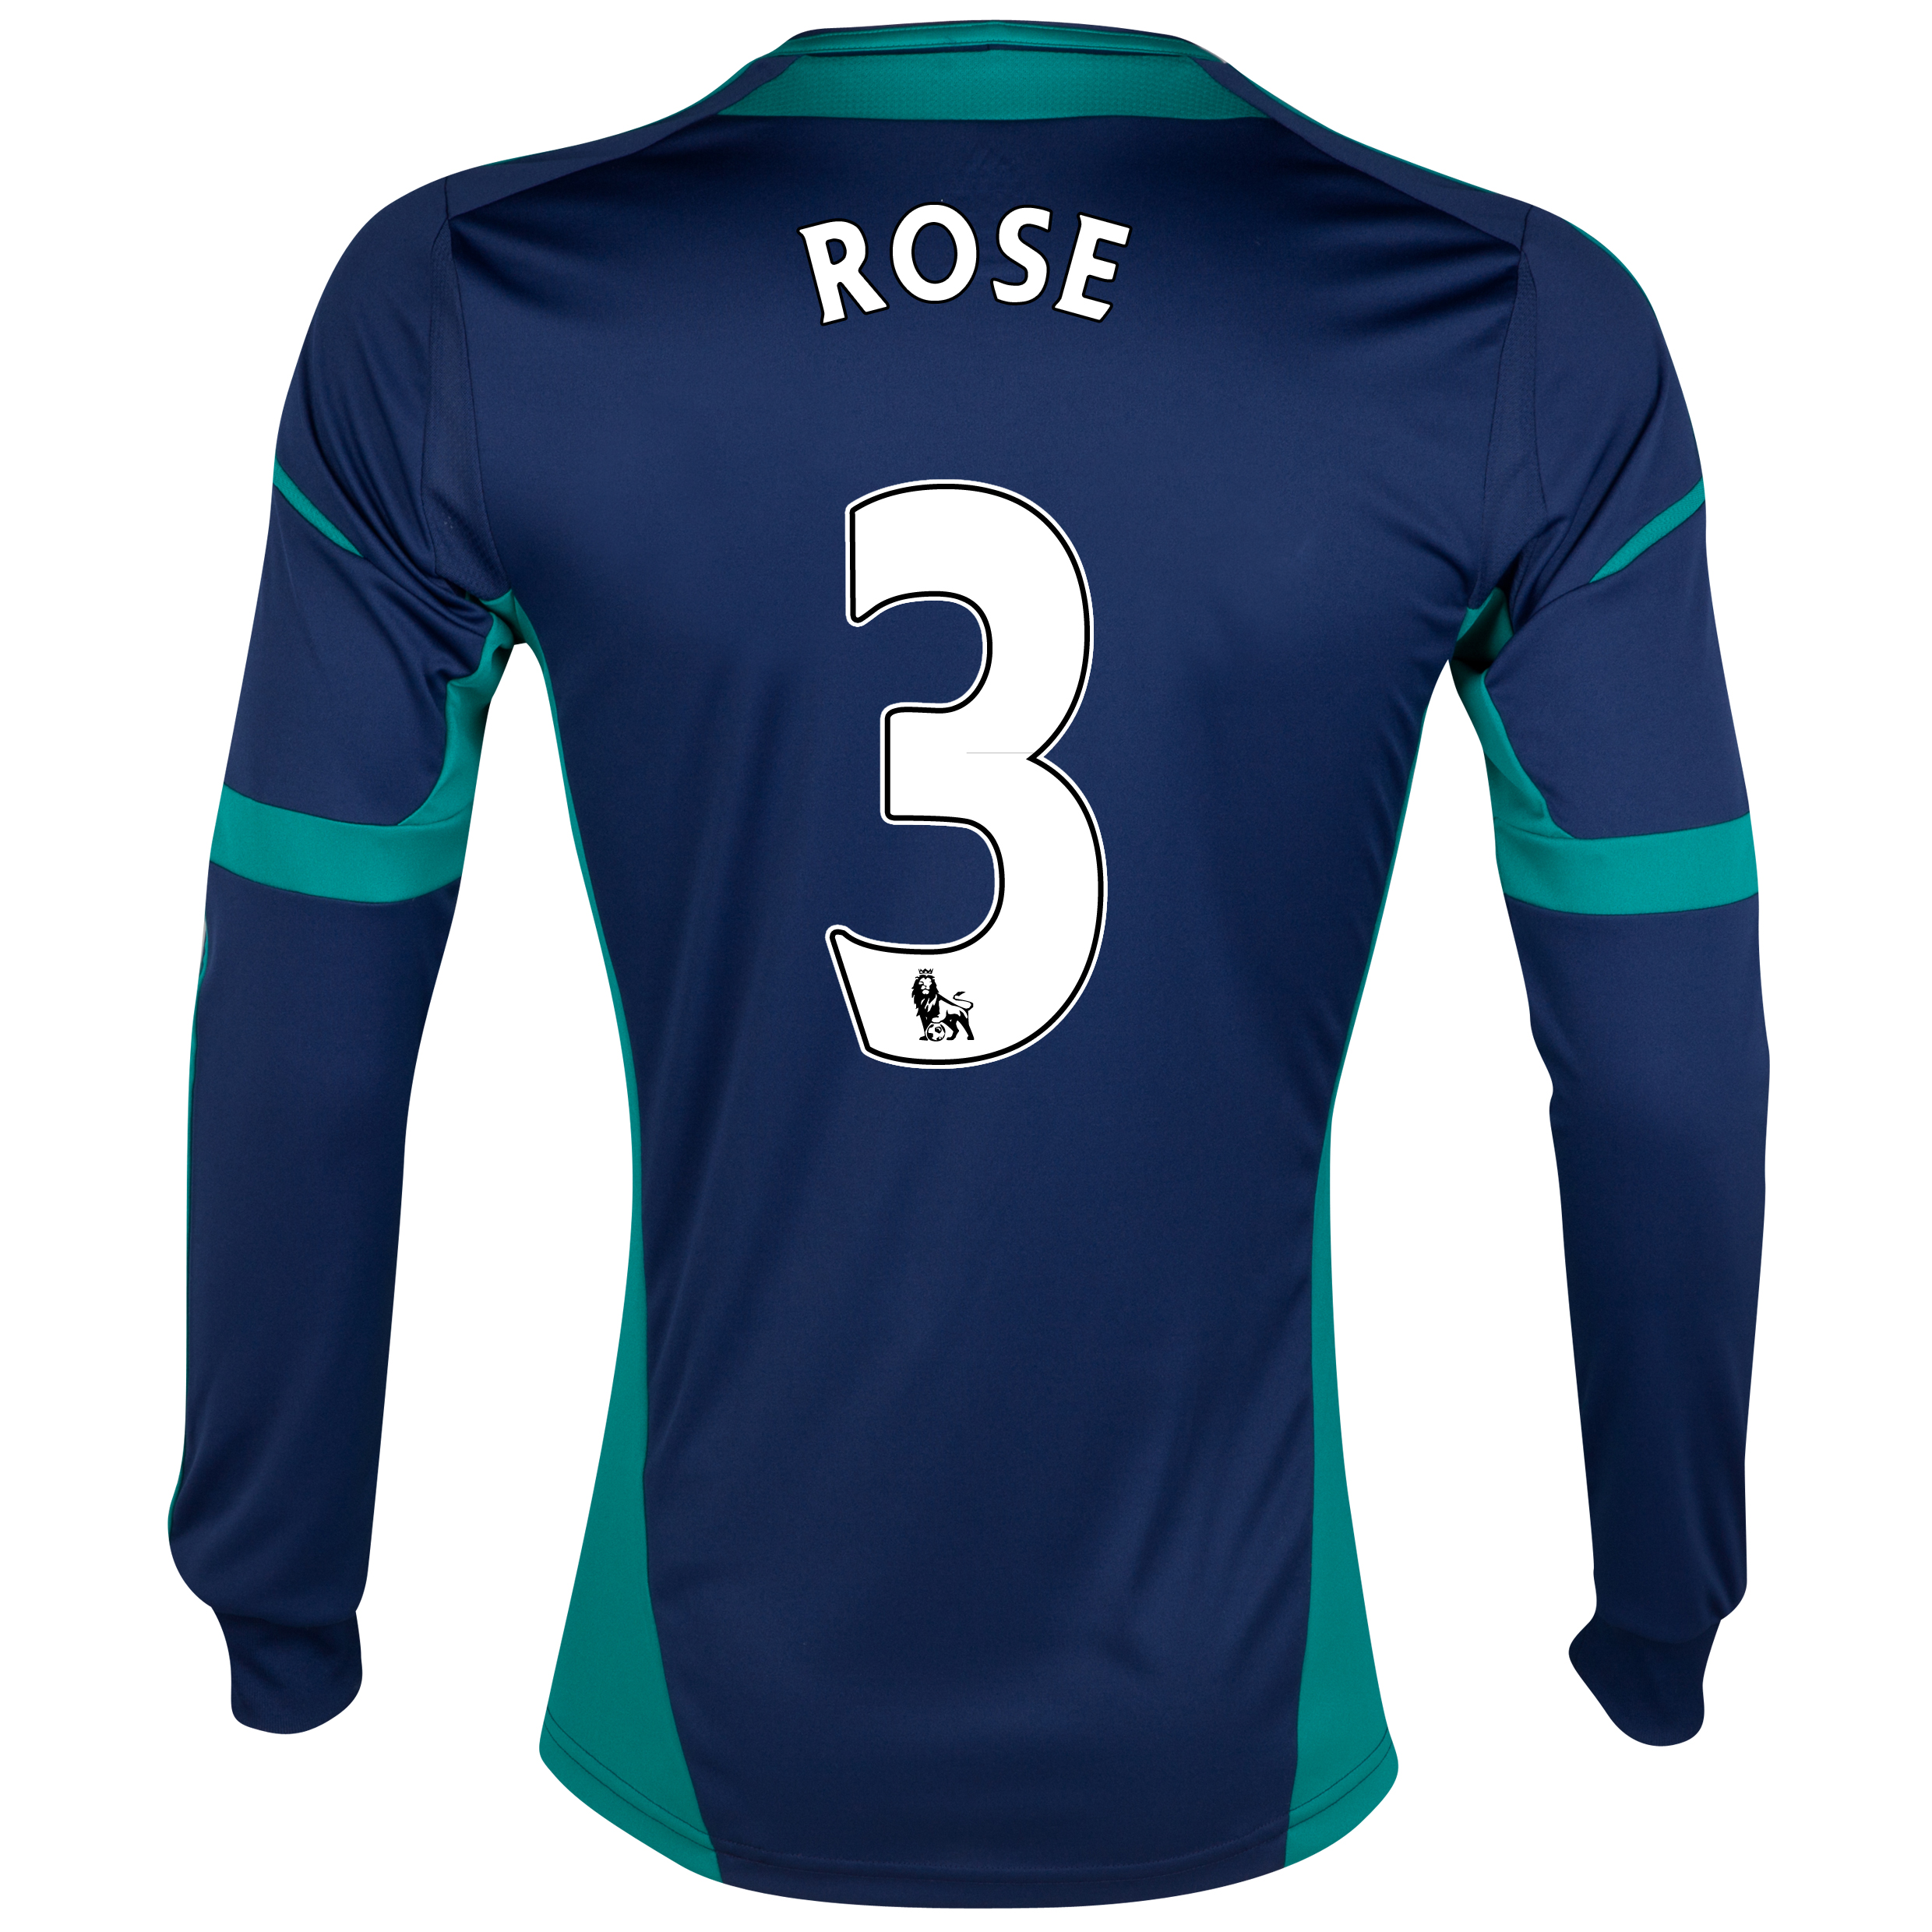 Sunderland Away Shirt 2012/13 - Long Sleeved - Junior with Rose 3 printing